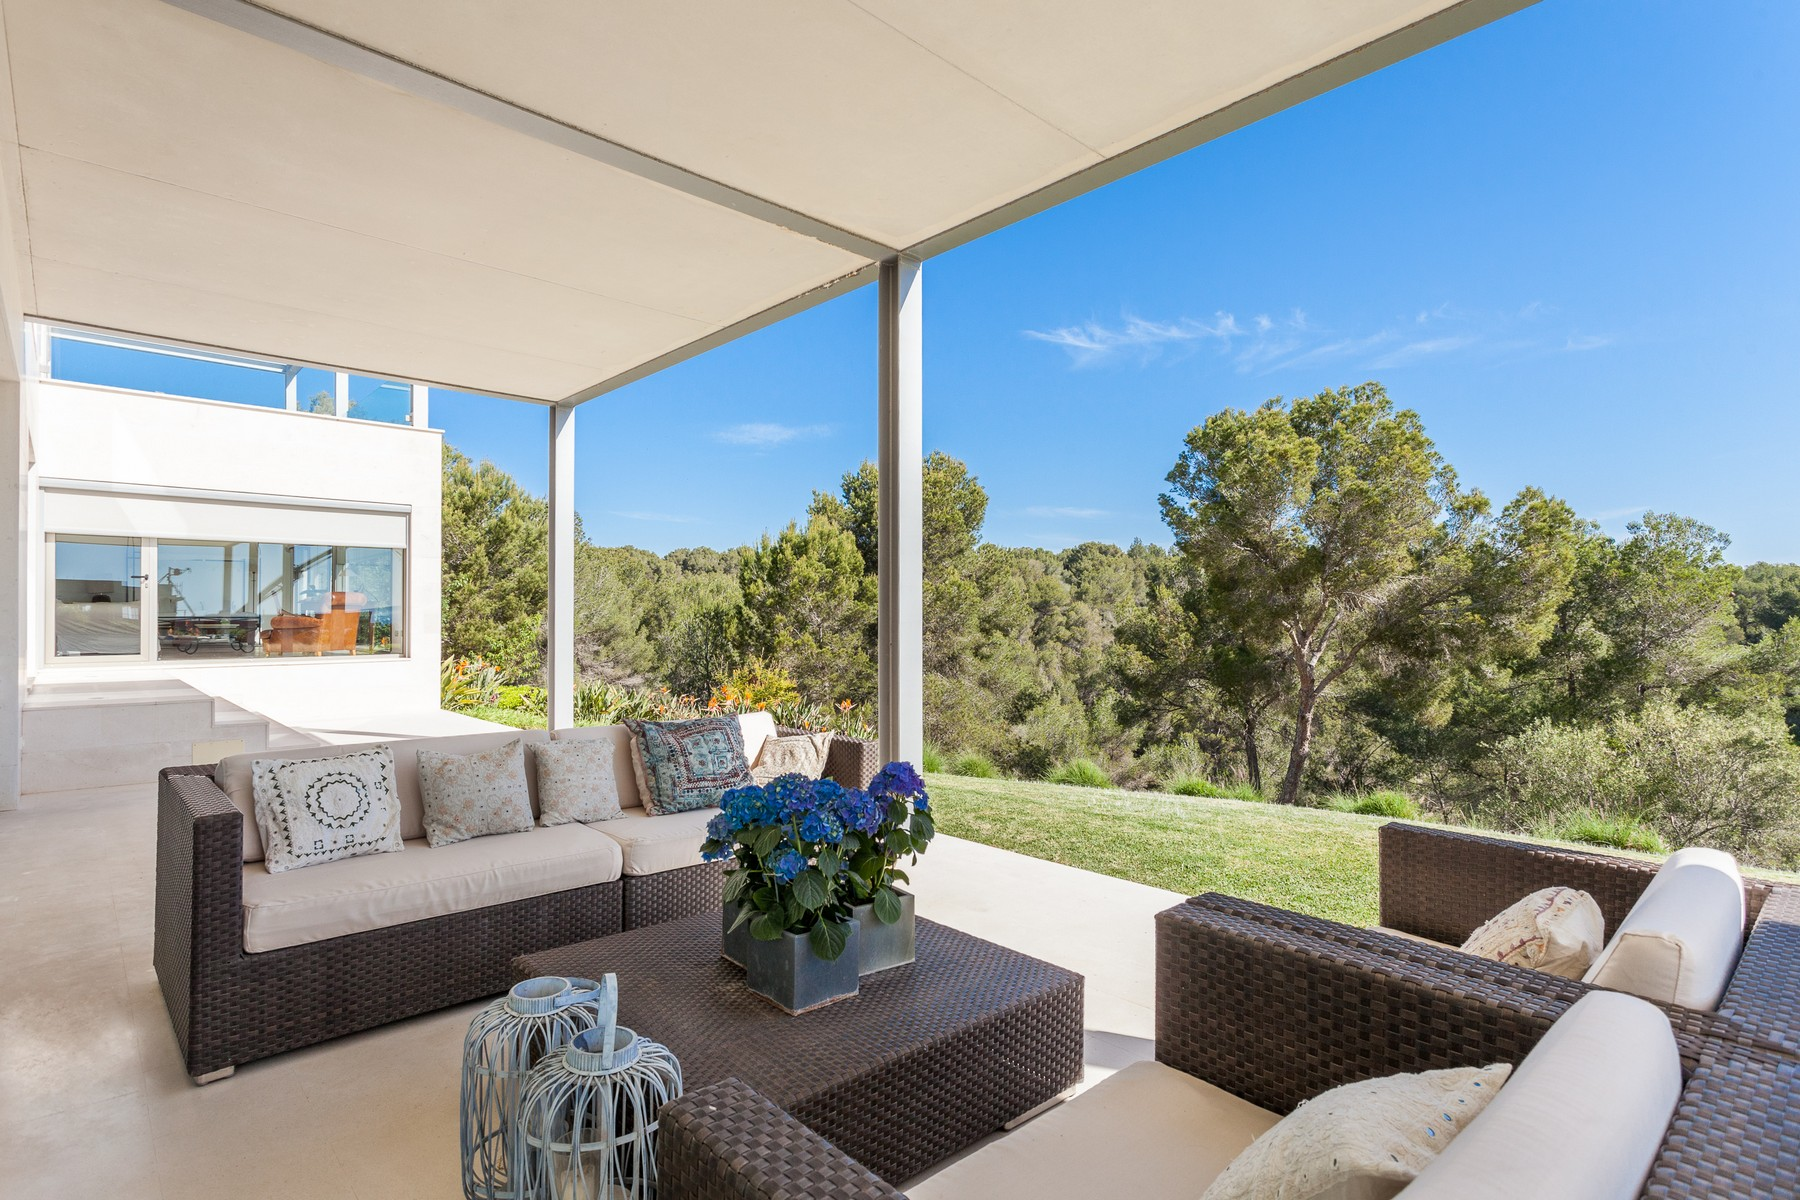 Single Family Home for Sale at Modern villa in Sol de Mallorca Santa Ponsa, Mallorca, 07181 Spain